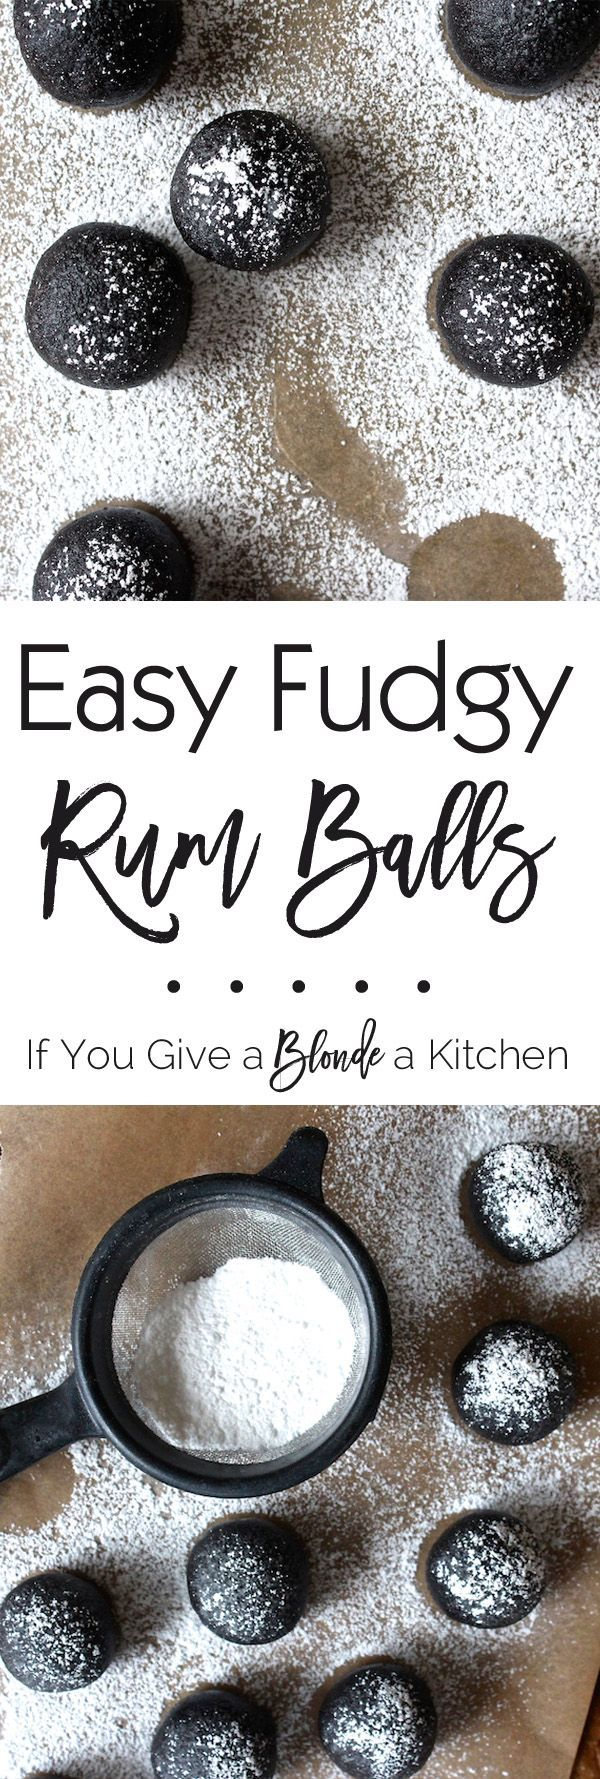 The easy to make no bake rum balls are the best! Boozy, fudgy and oh-so delicious for Christmas! | Recipe on /haleydwilliams/